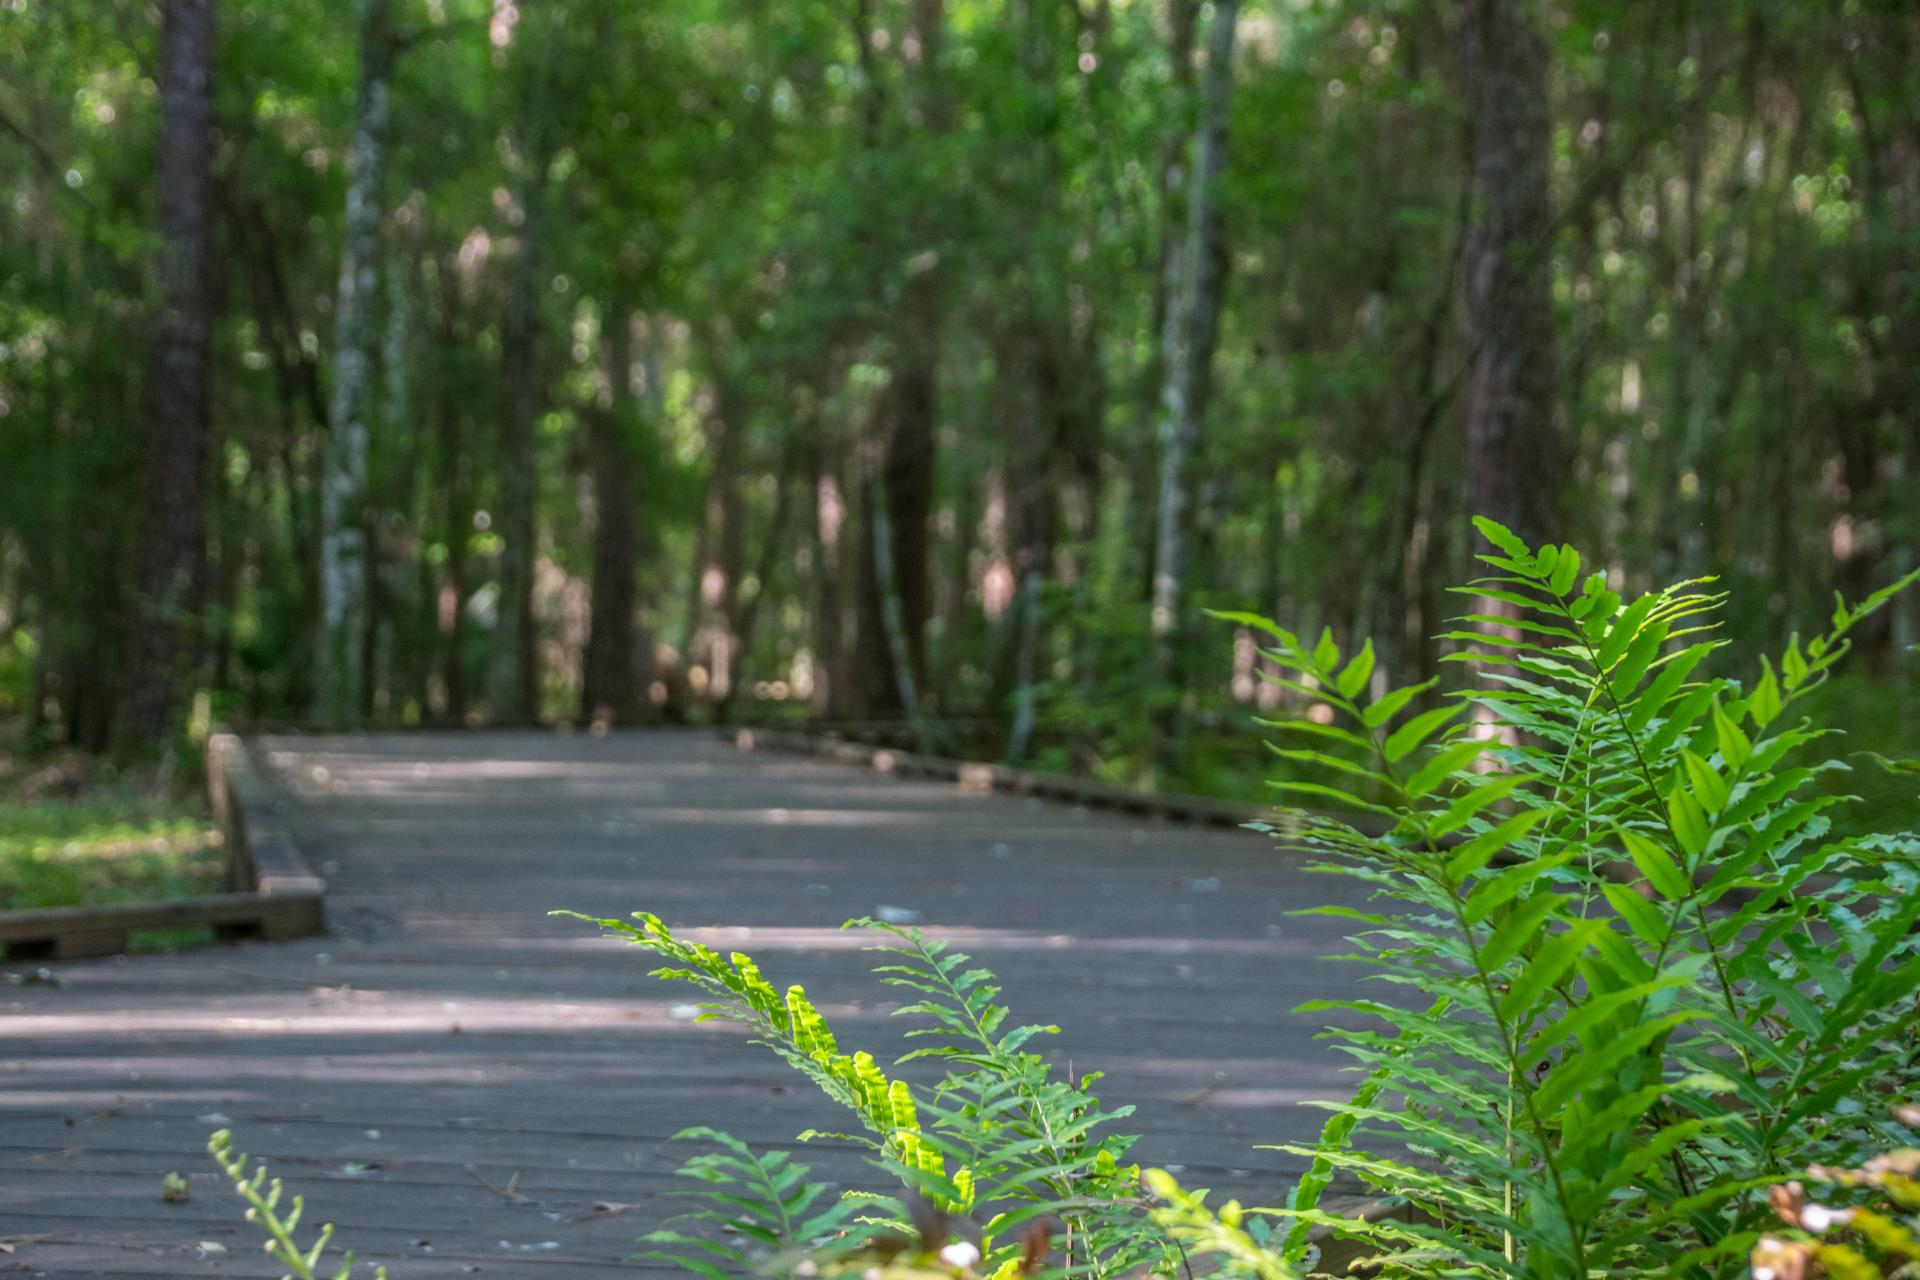 Shingle Creek Regional Trail